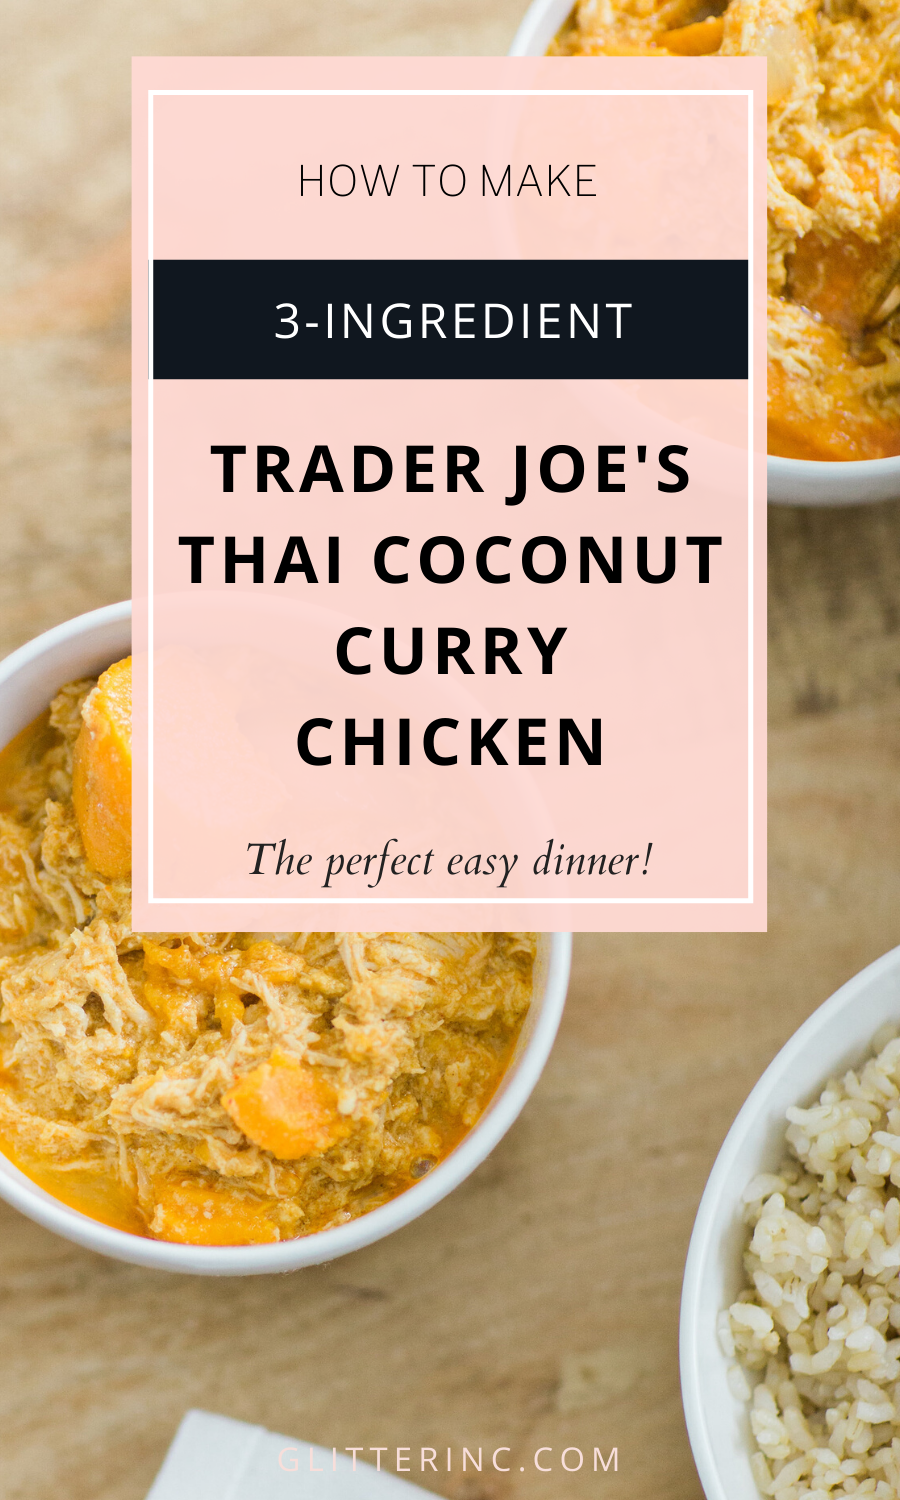 Our favorite 3-Ingredient Trader Joe's Thai Coconut Curry Chicken. Click through for the EASY recipe. #easydinner #traderjoesdinner #traderjoes #slowcooker #crockpot #instantpot | glitterinc.com | @glitterinc